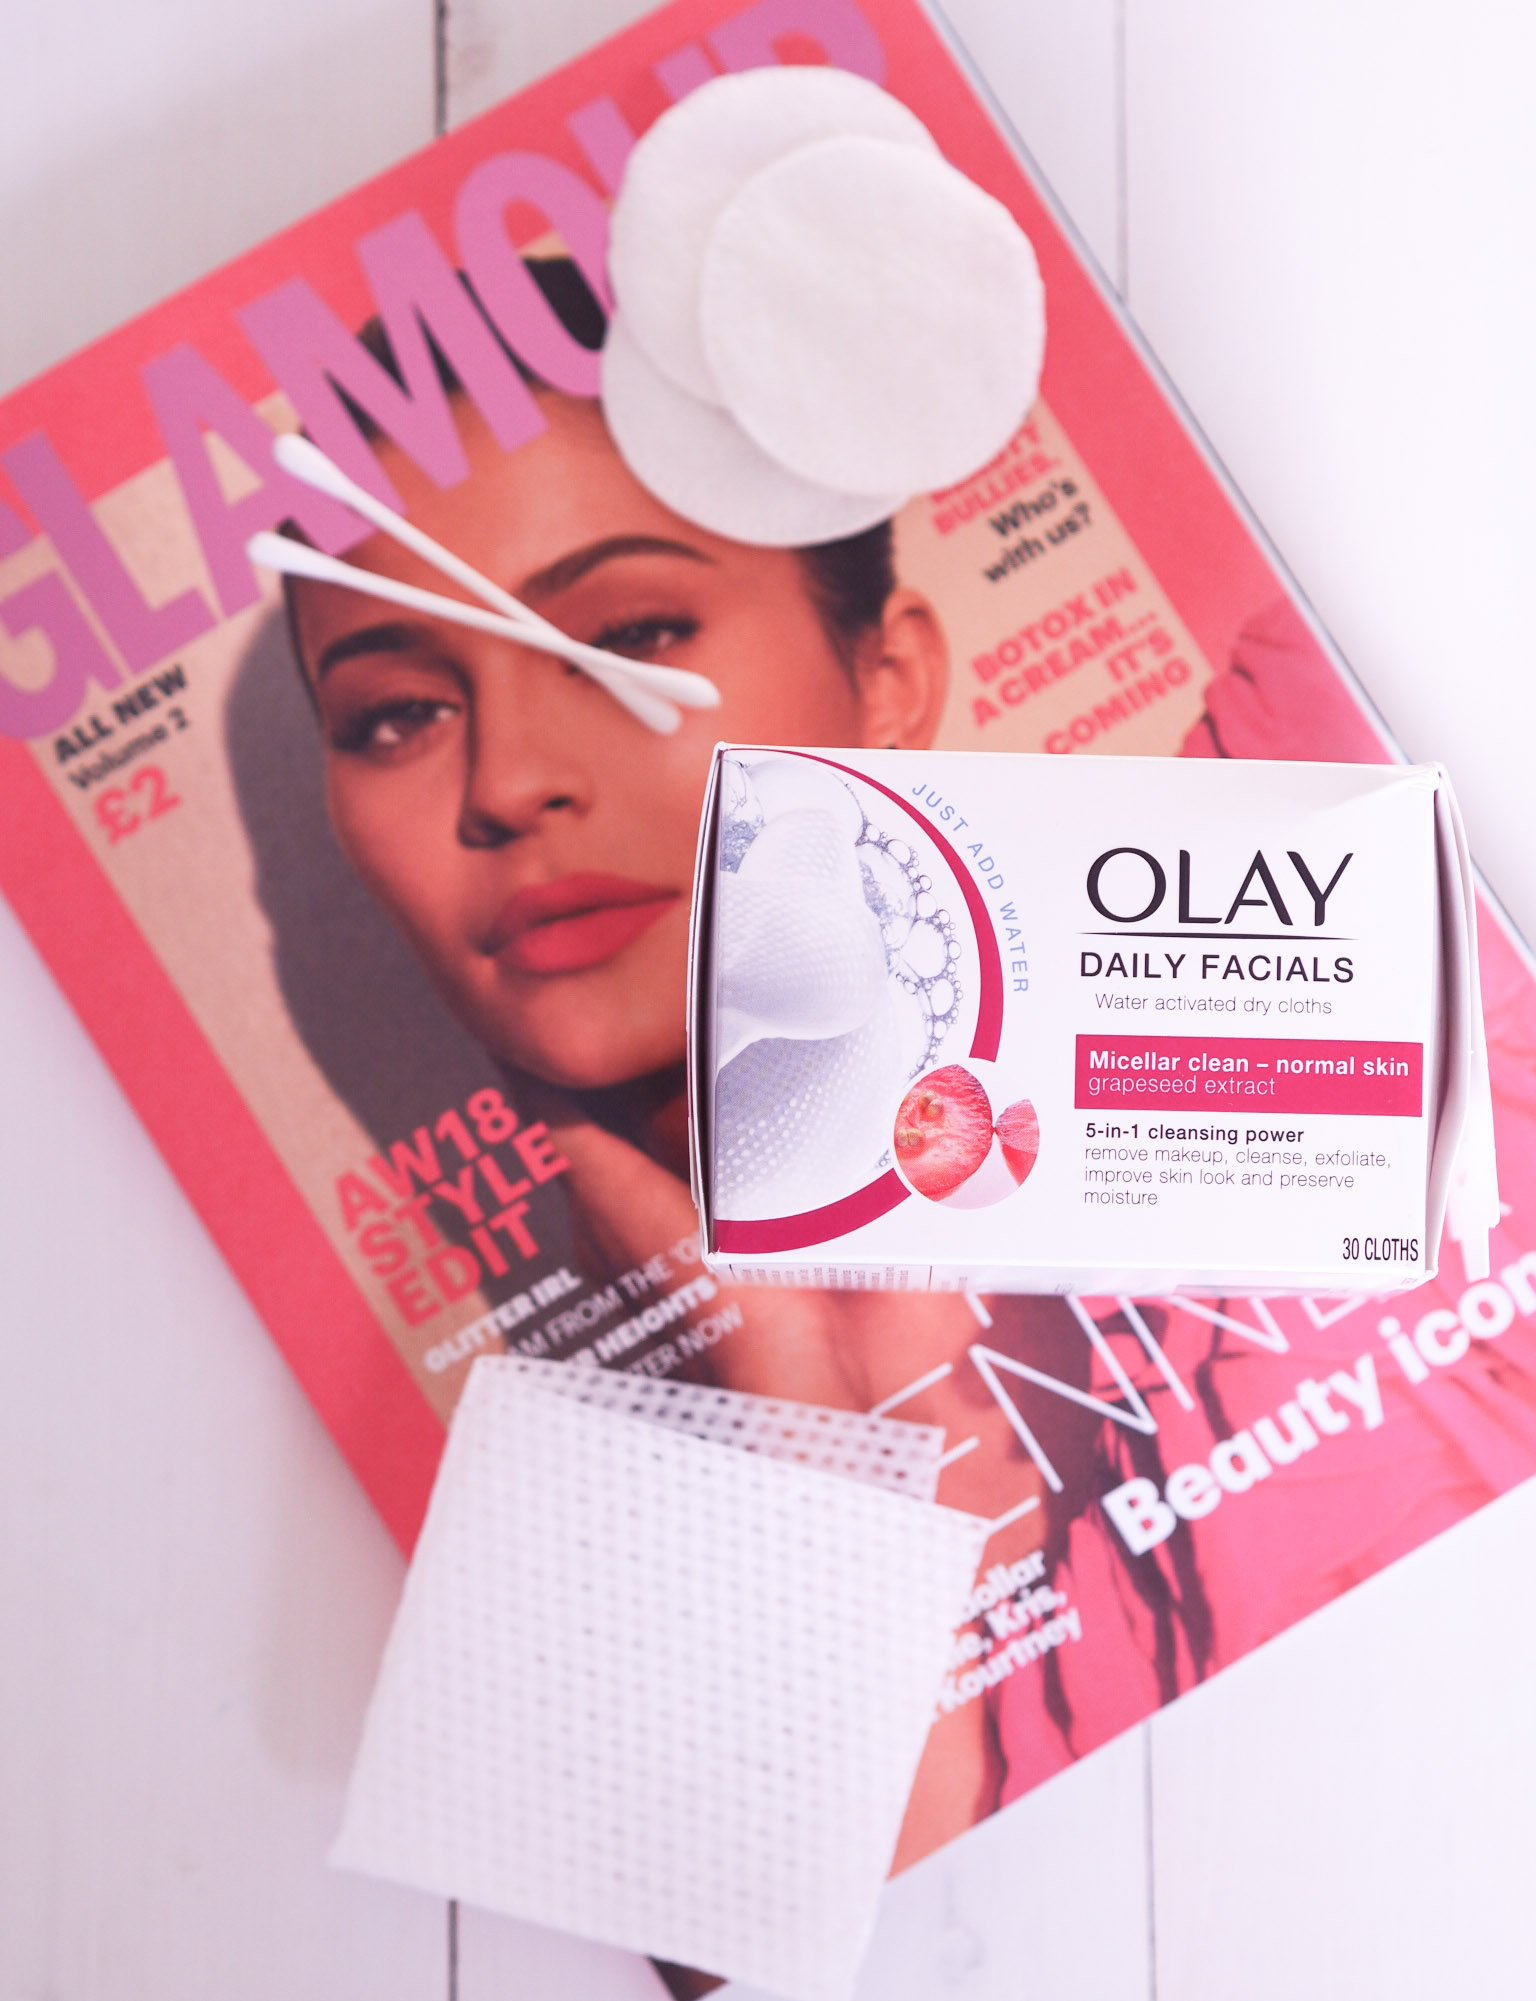 Olay Daily Facials 5-in-1 Dry Cloths Review